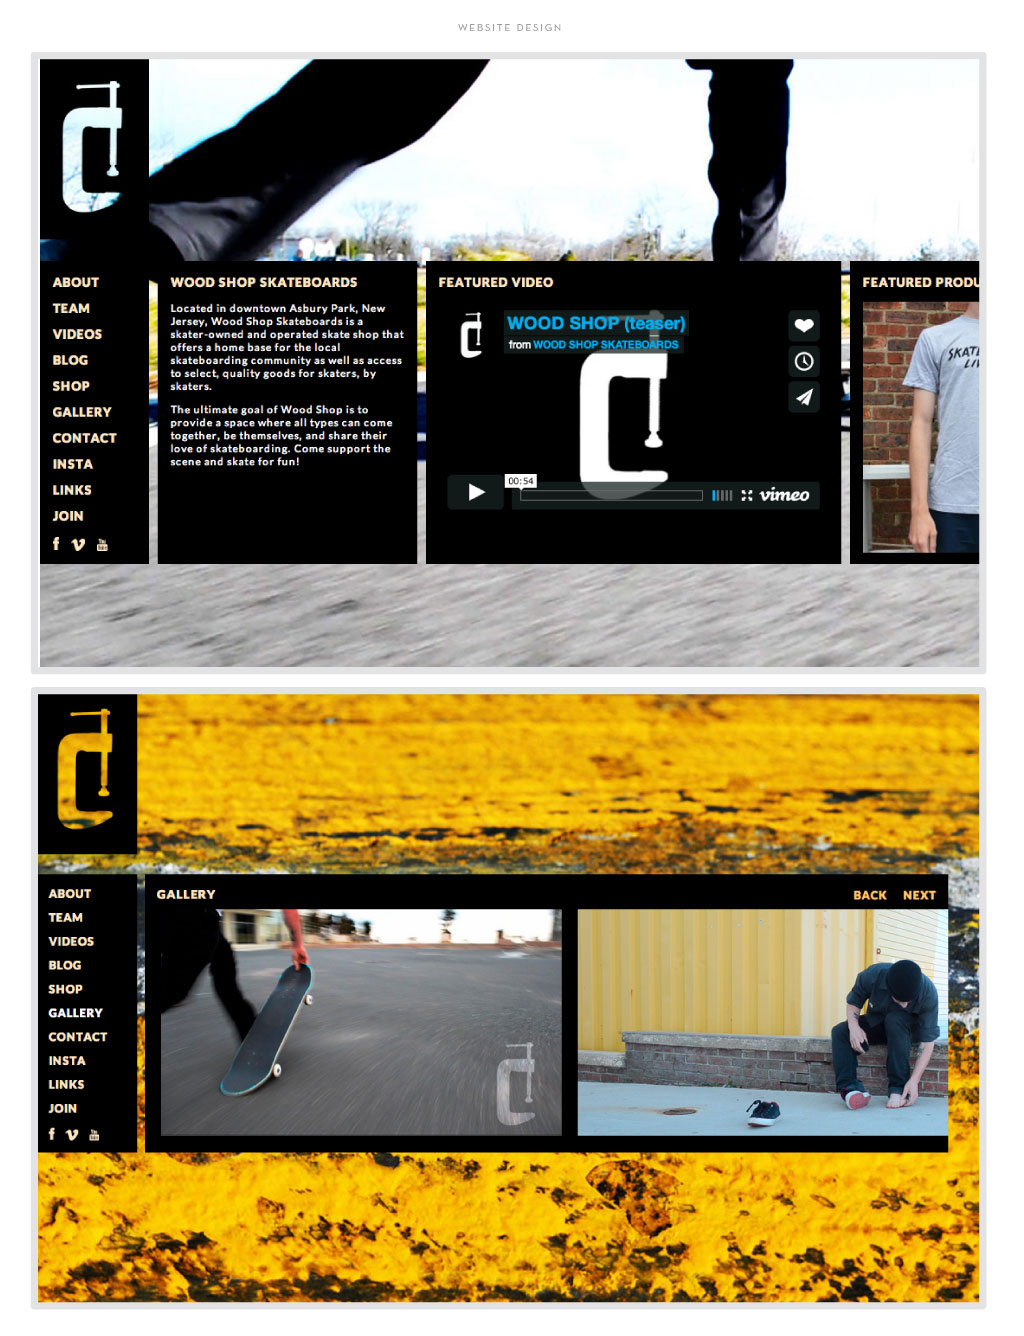 Wood Shop Skateboards web design by M studio